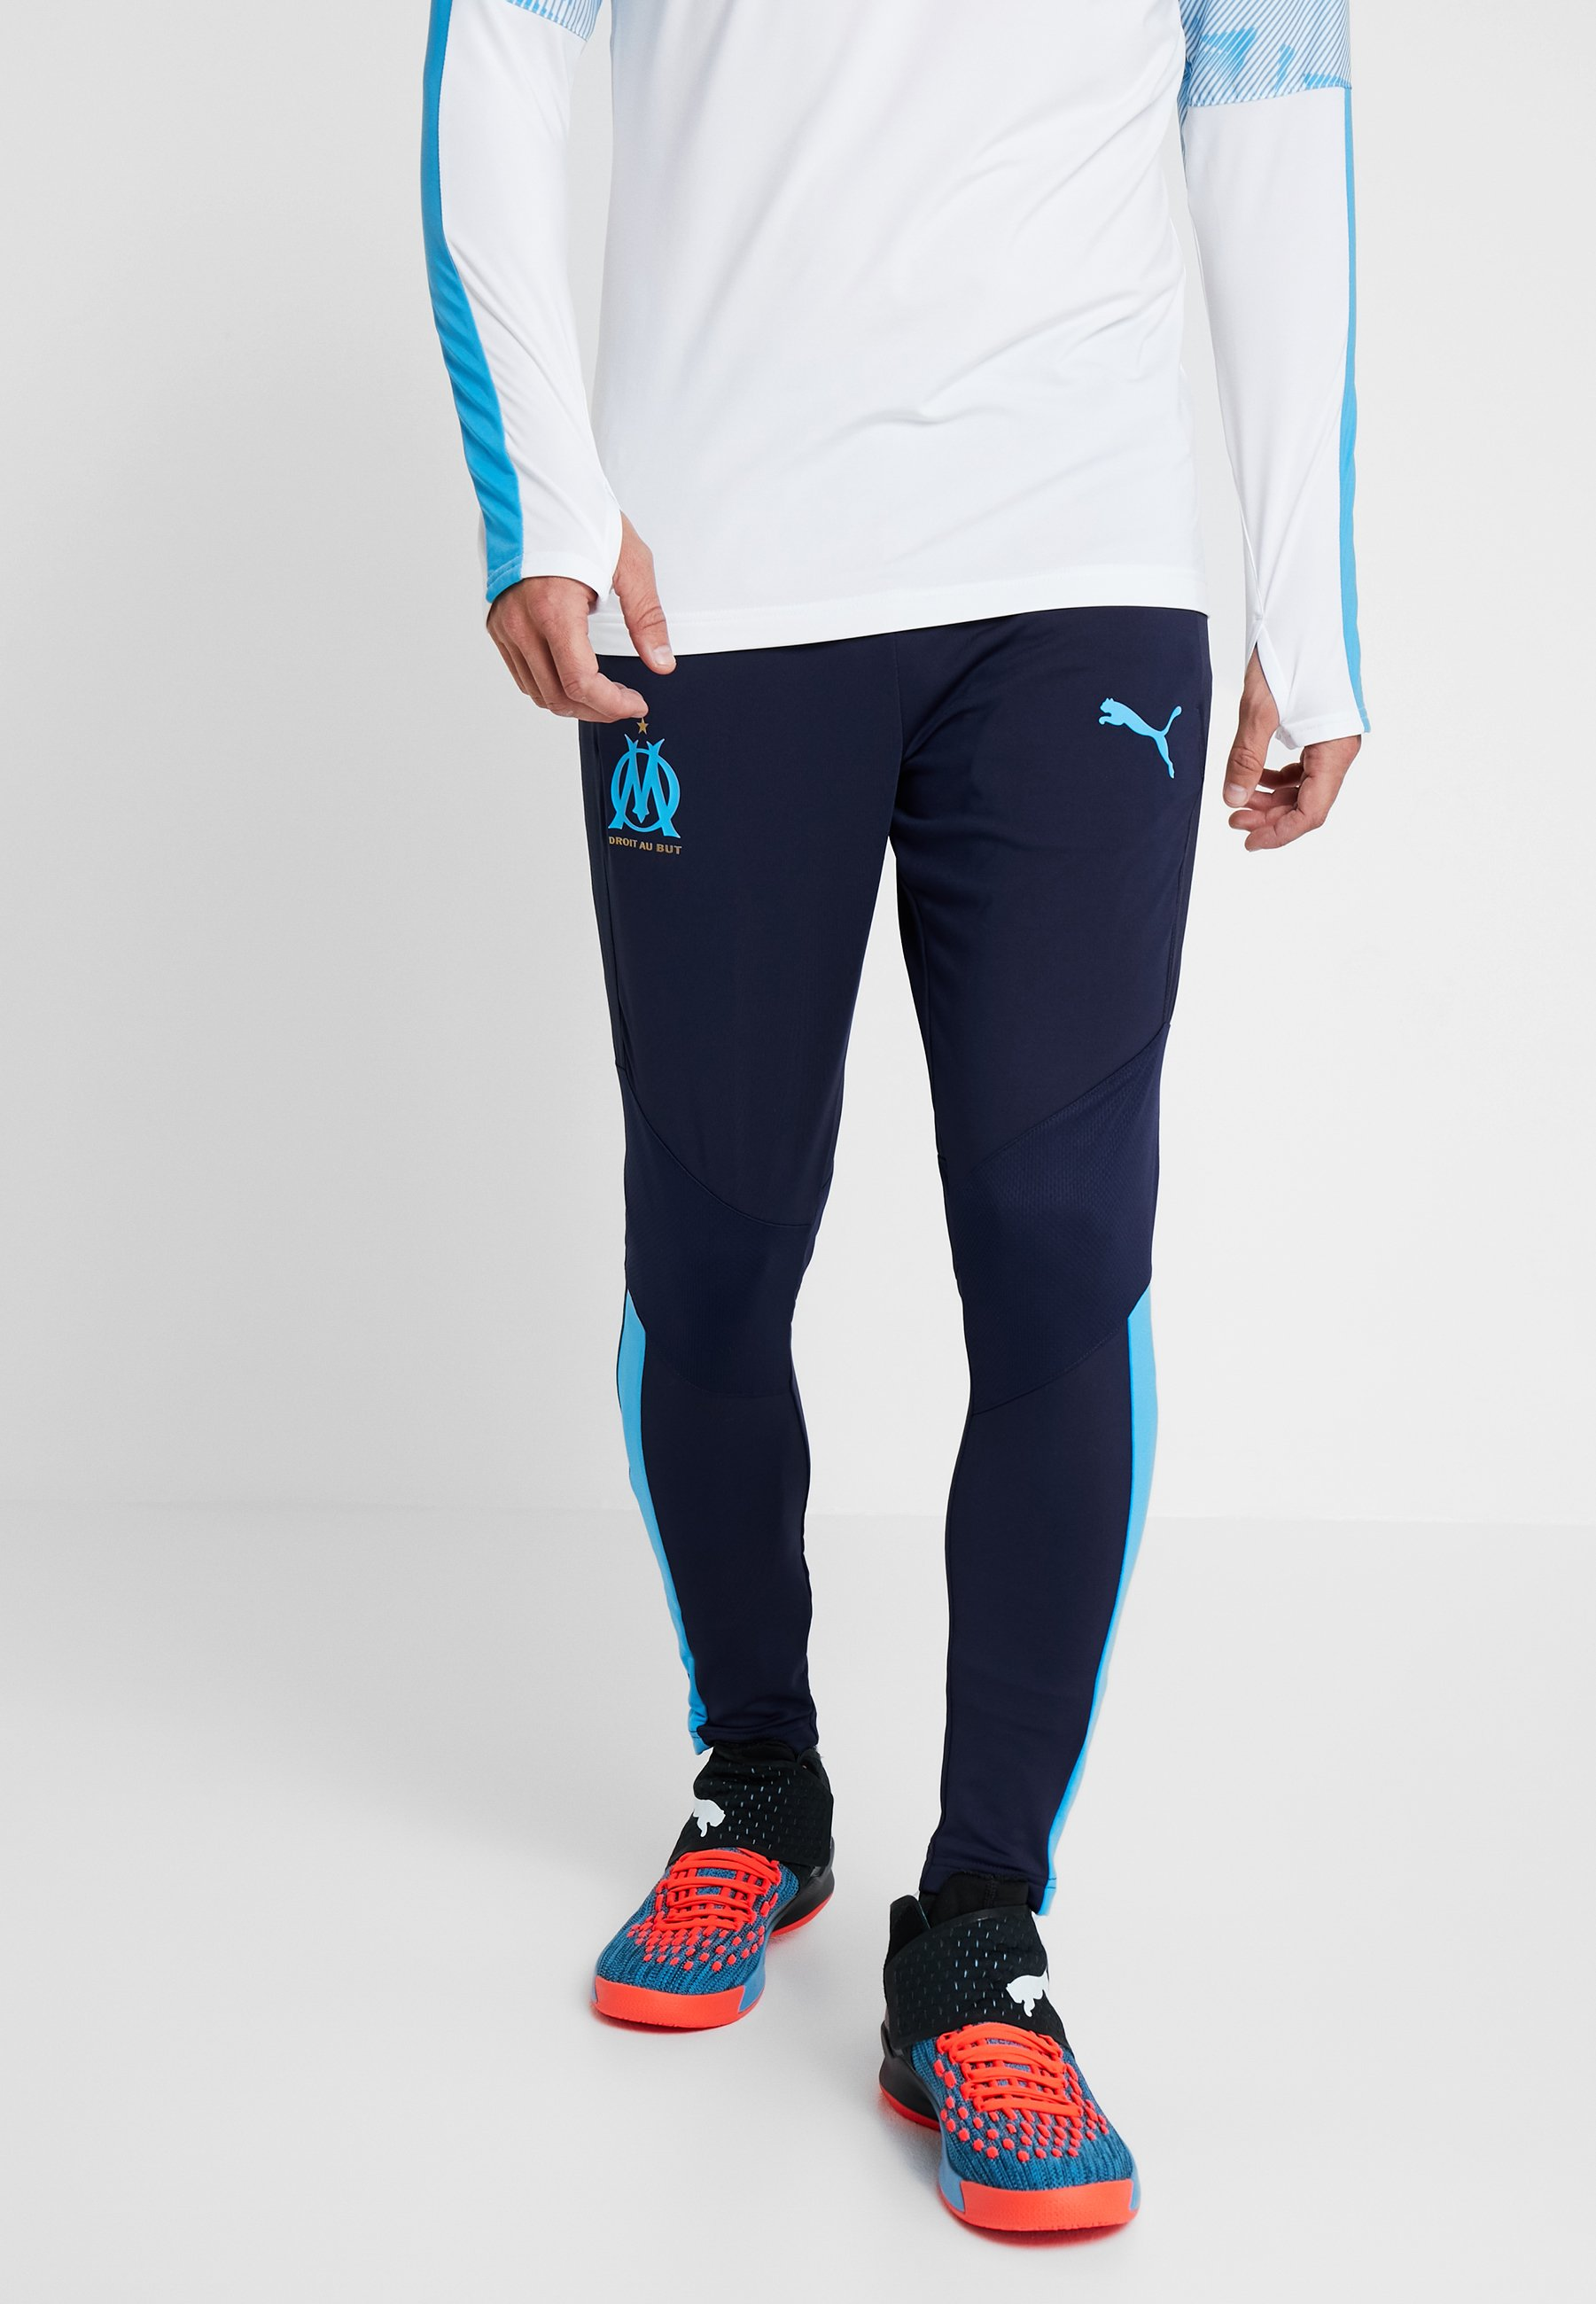 PocketsArticle Zipped De Peacoat Supporter Training Pants Marsaille Puma With Olympique Pro Nn0OwZkPX8